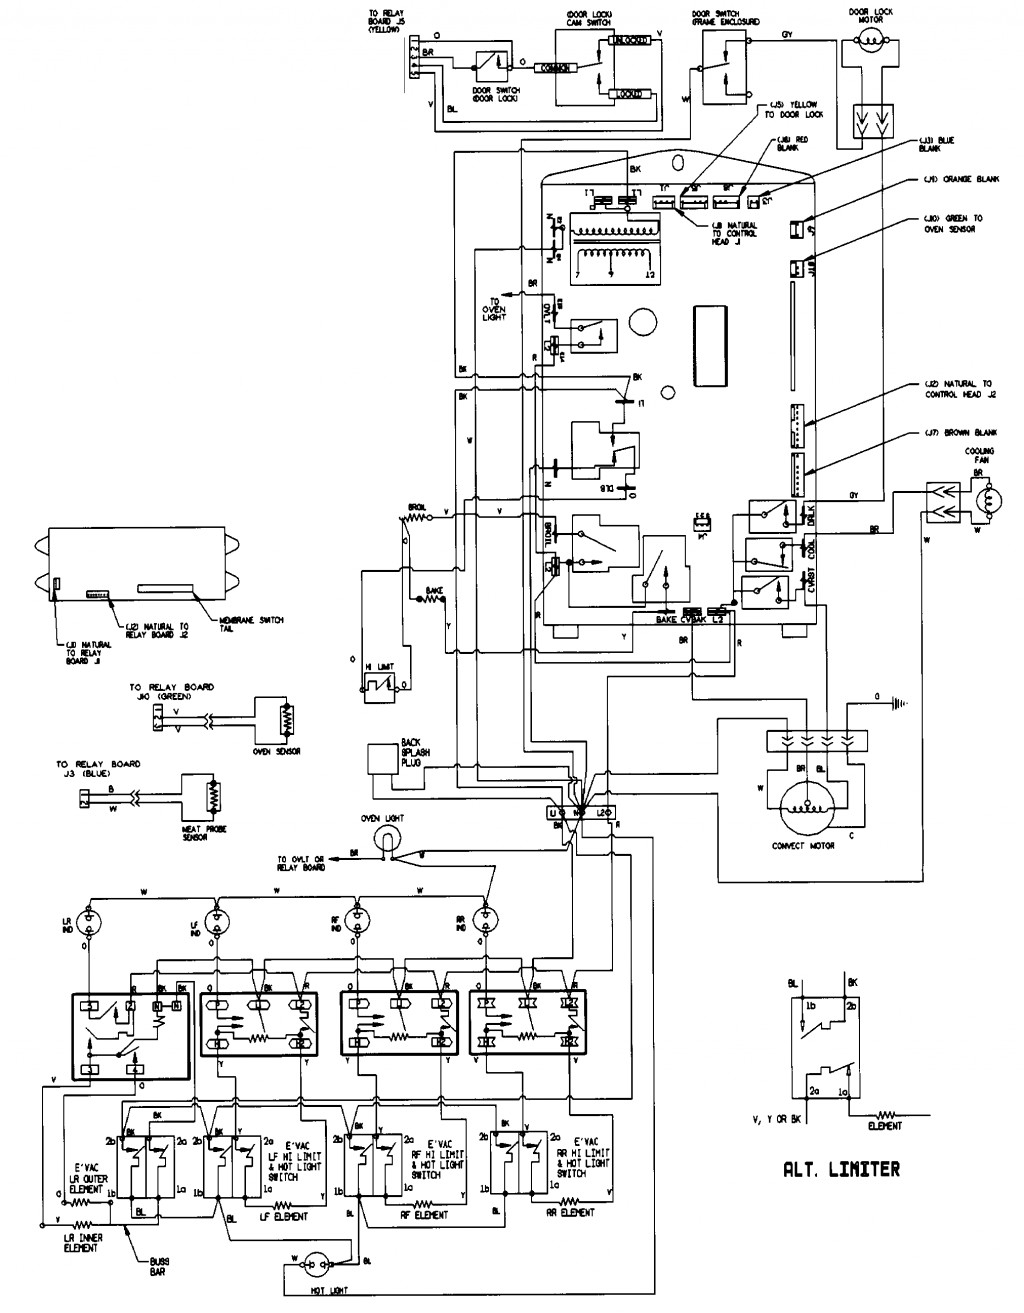 ... Old Fashioned Amana Dryer Wiring Diagram Gallery Wiring Schematics  Amana Dryer Wire Amana Dryer Wiring Diagram